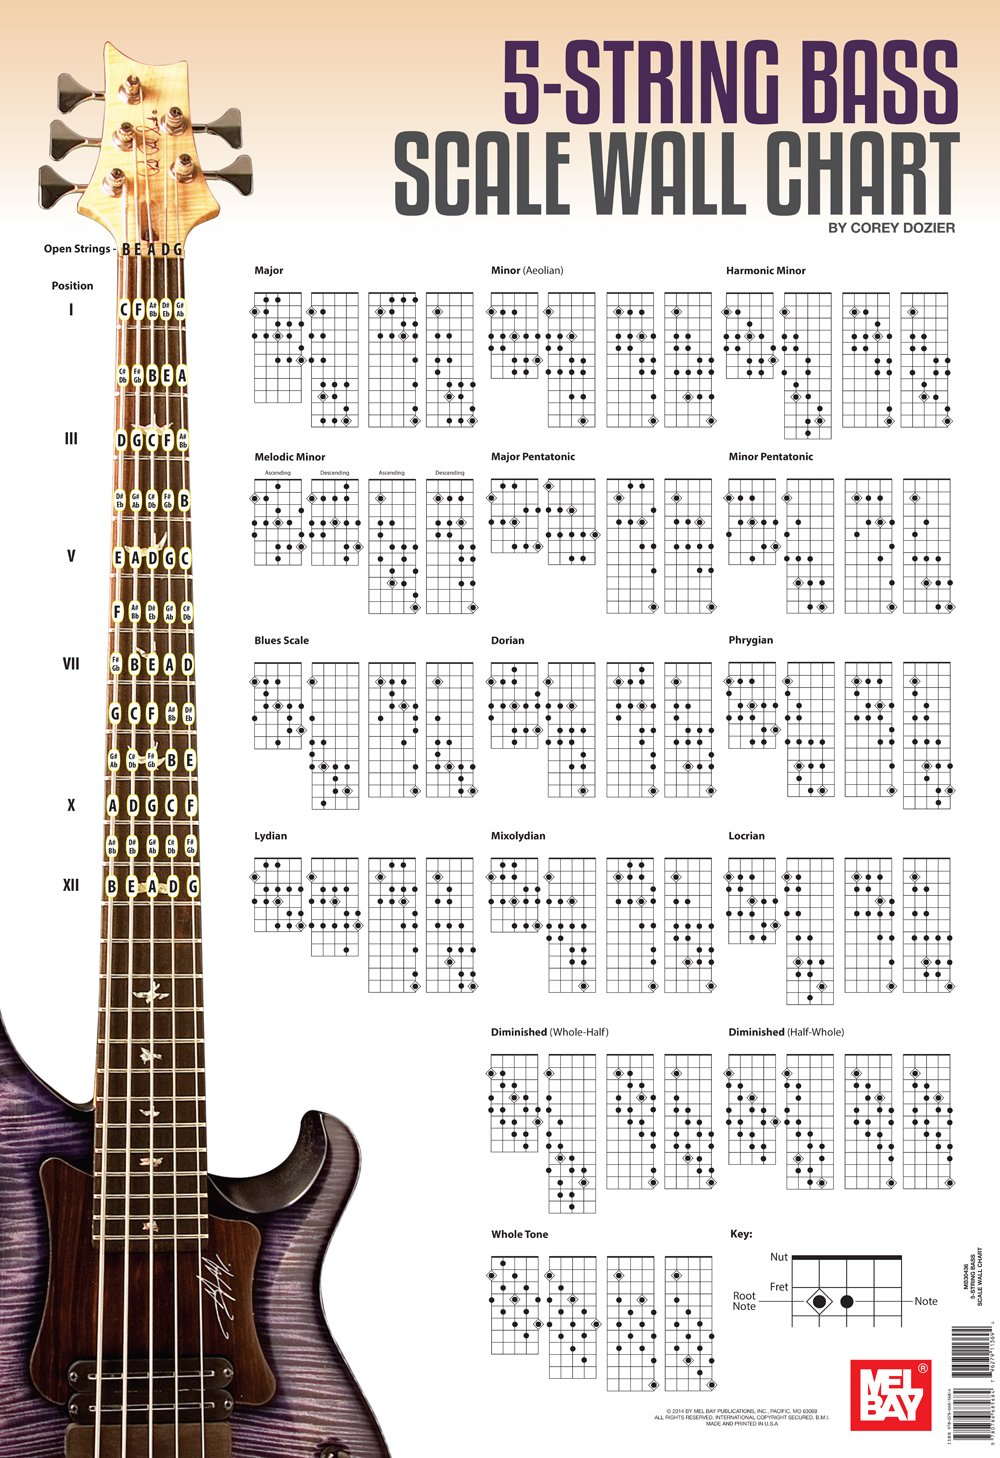 5 String Bass Scale Wall Chart Corey Dozier 9780786685684 Amazon